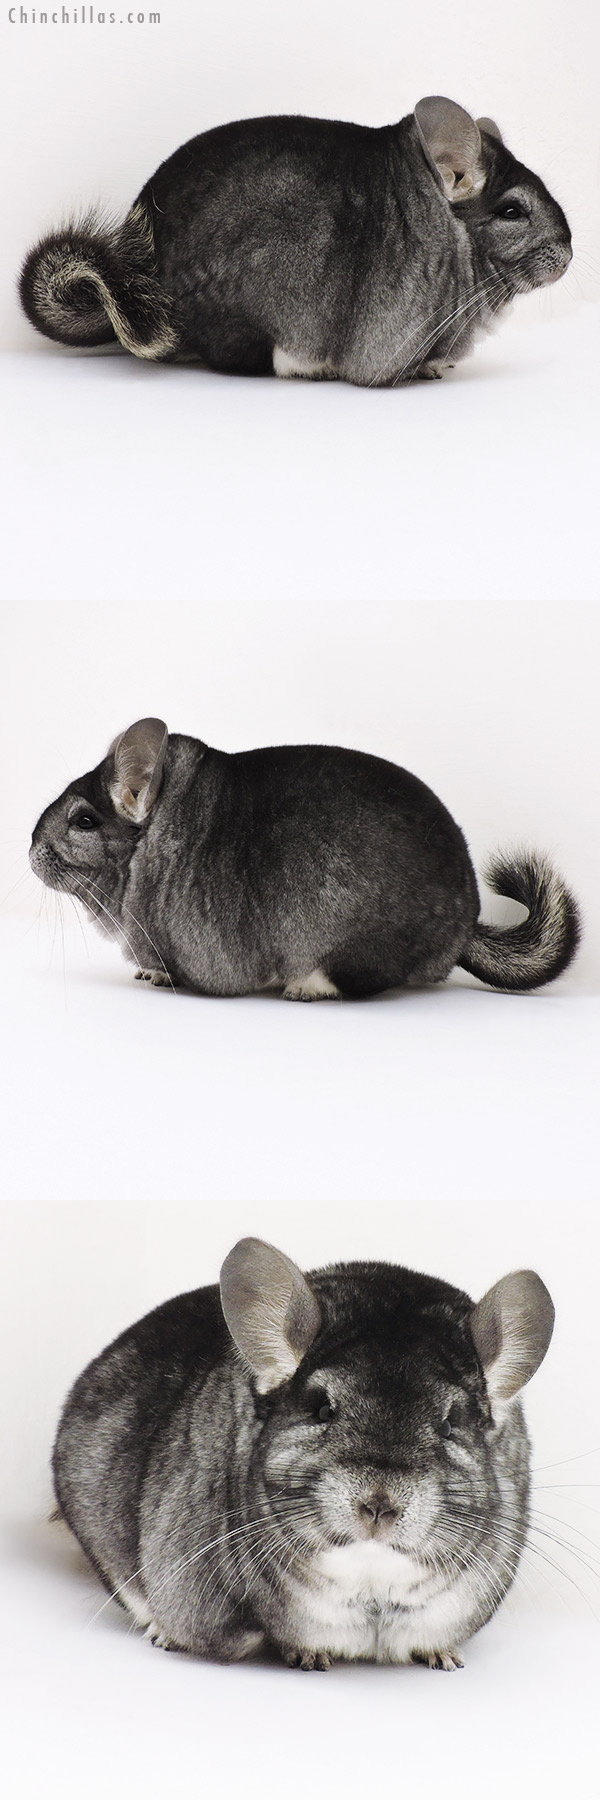 16296 Extra Large Blocky Premium Production Quality Standard Female Chinchilla